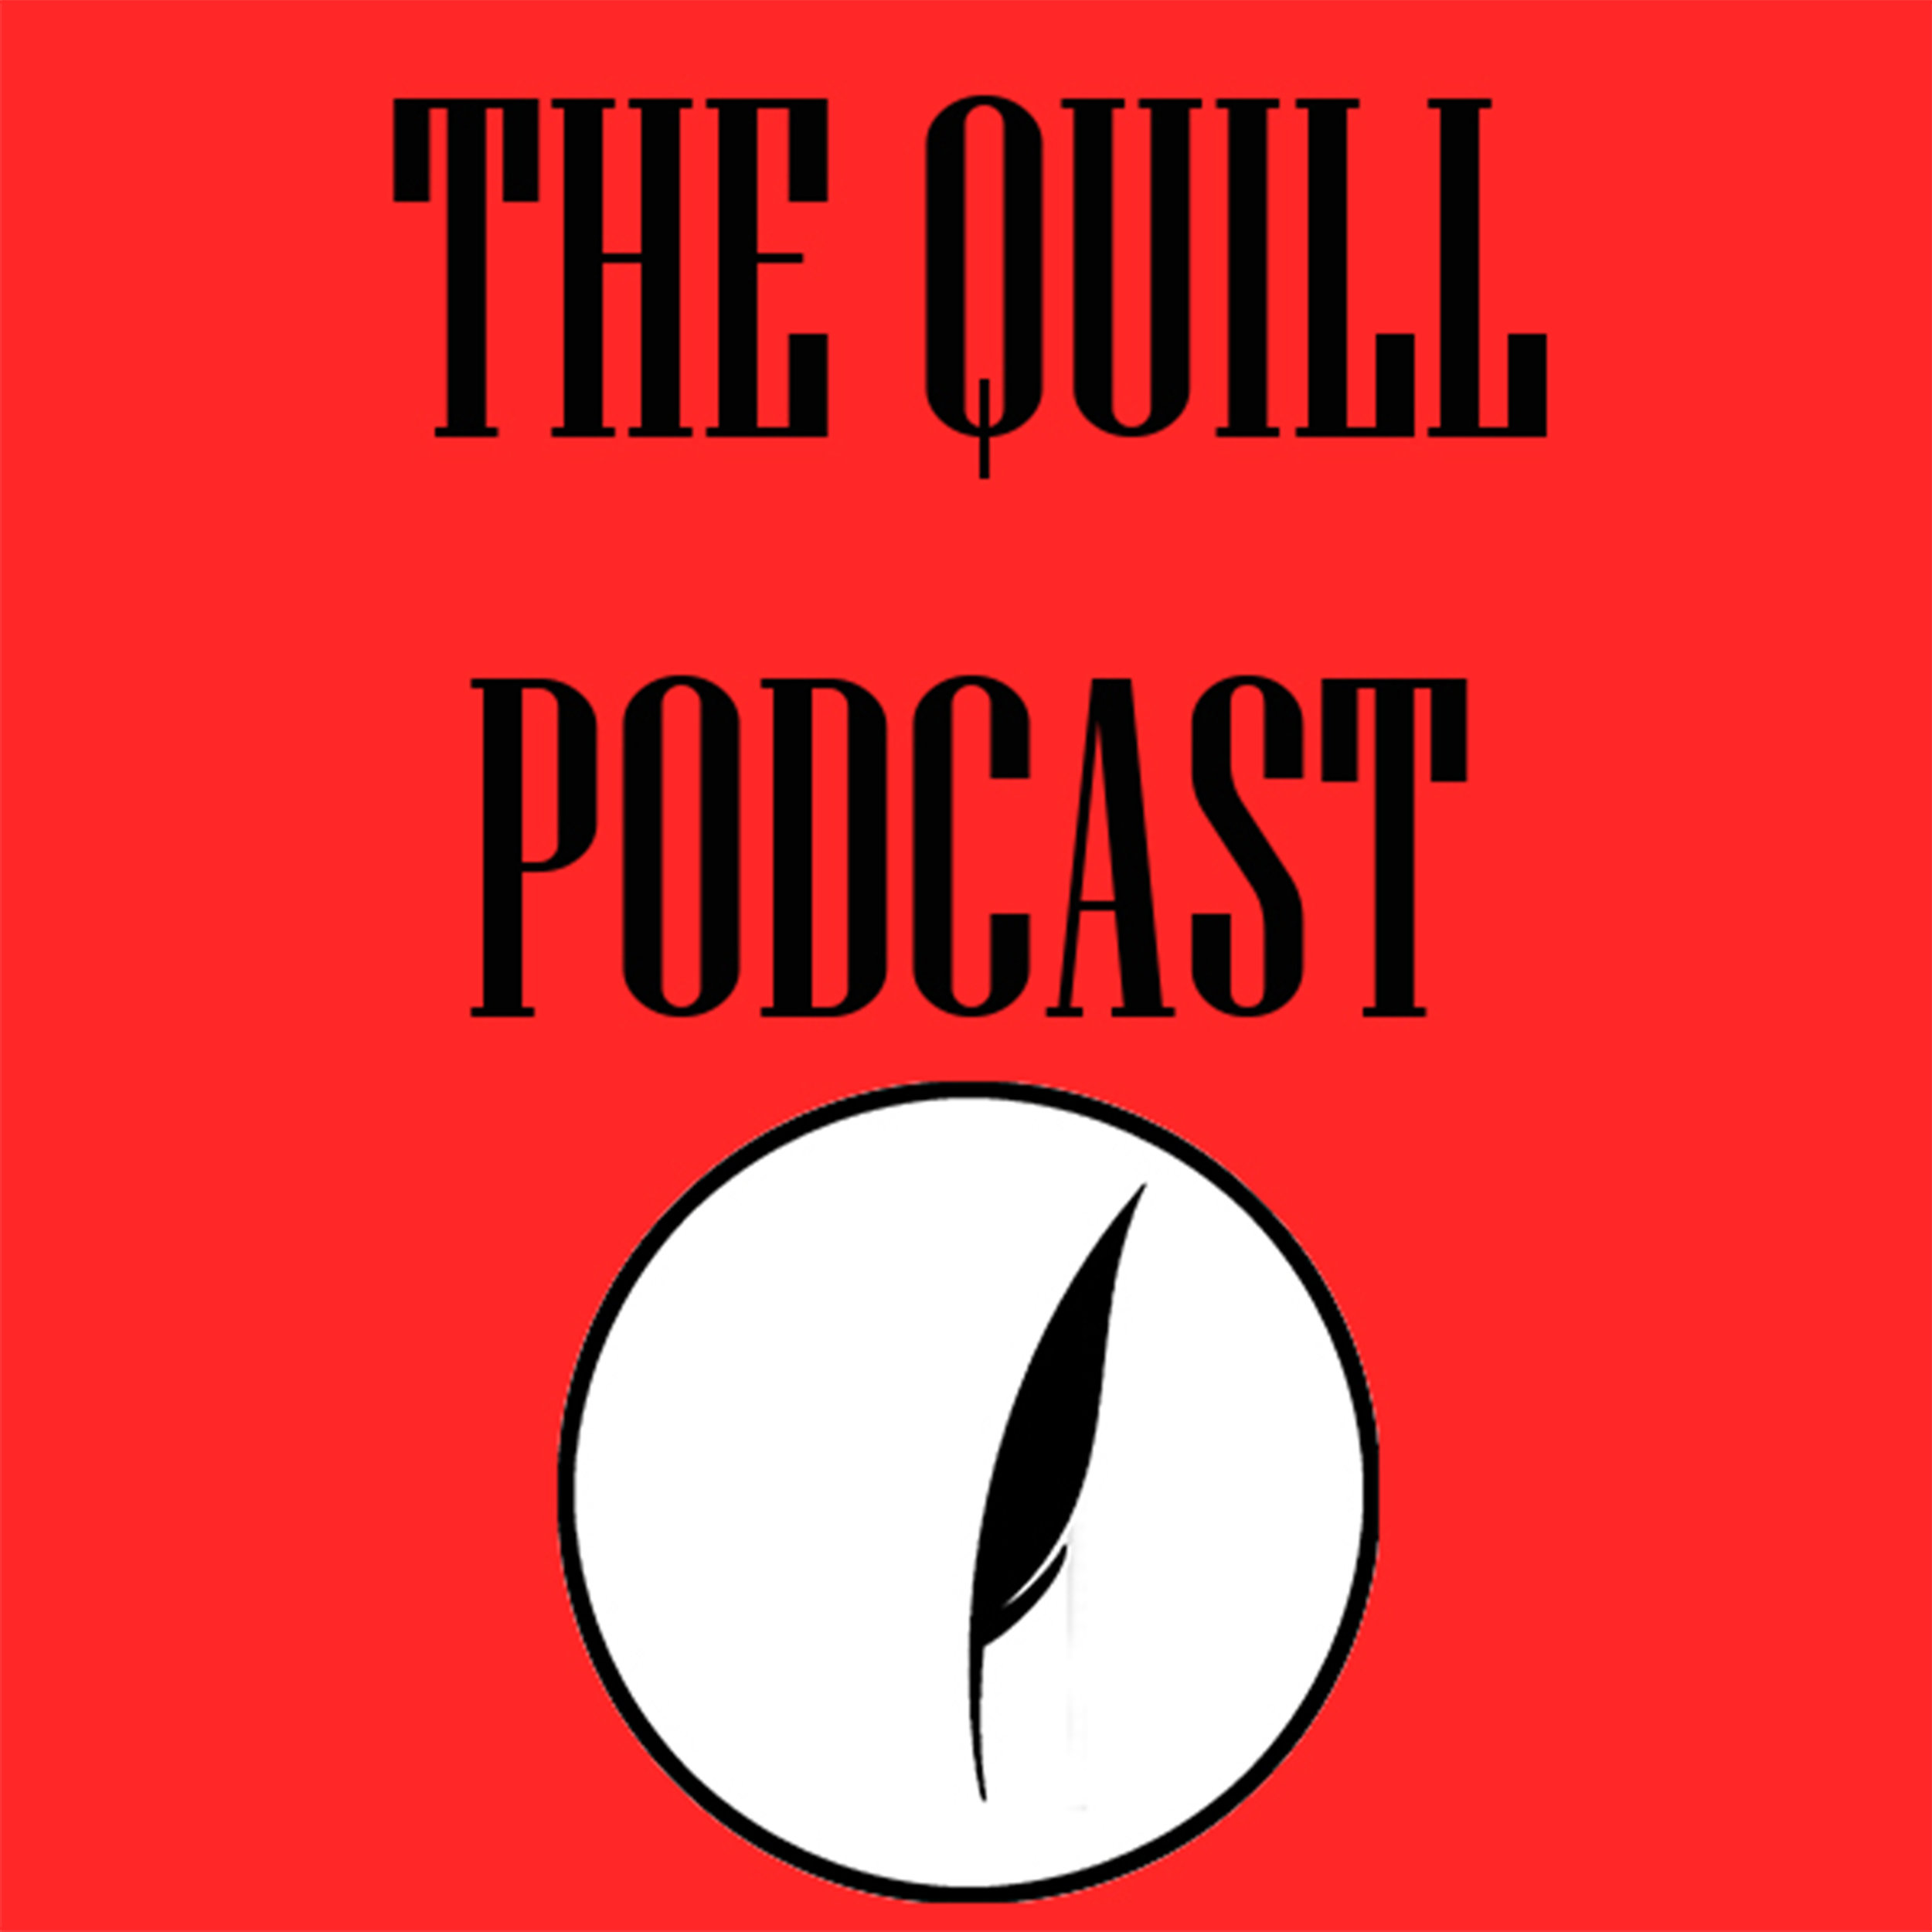 the quill podcast logo red.jpg